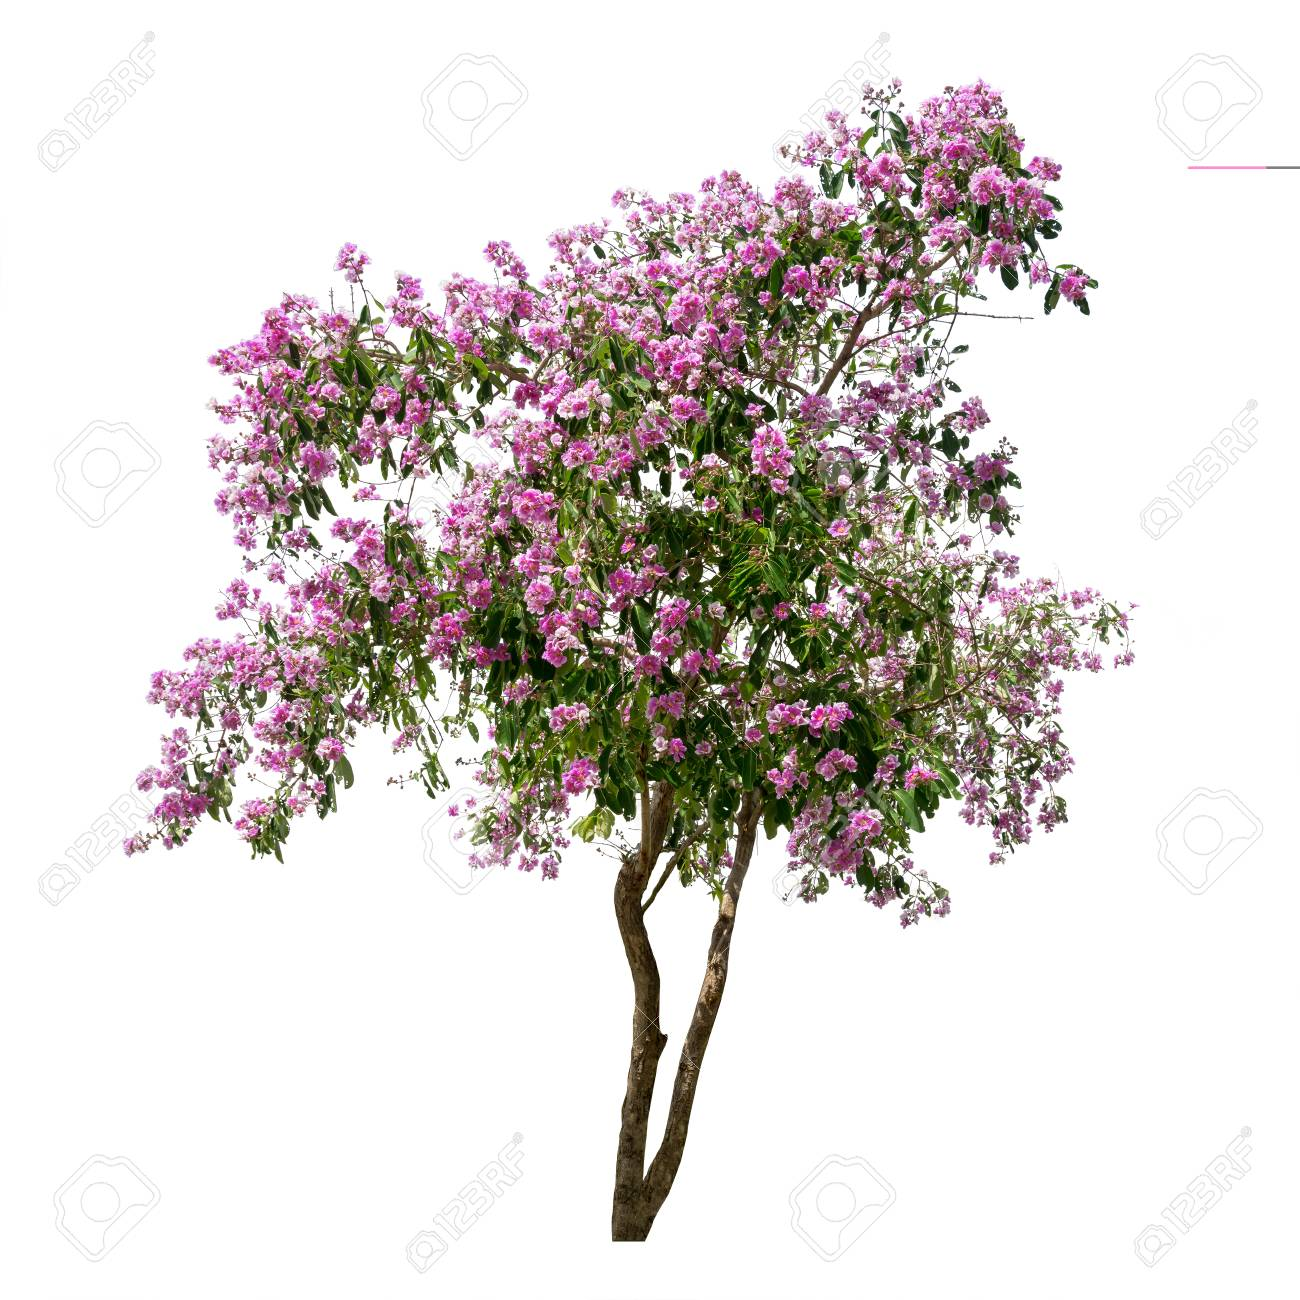 Png Tree With White And Pink Flowers - Isolated Lagerstroemia Speciosa Tree With Purple And Pink Flowers ...